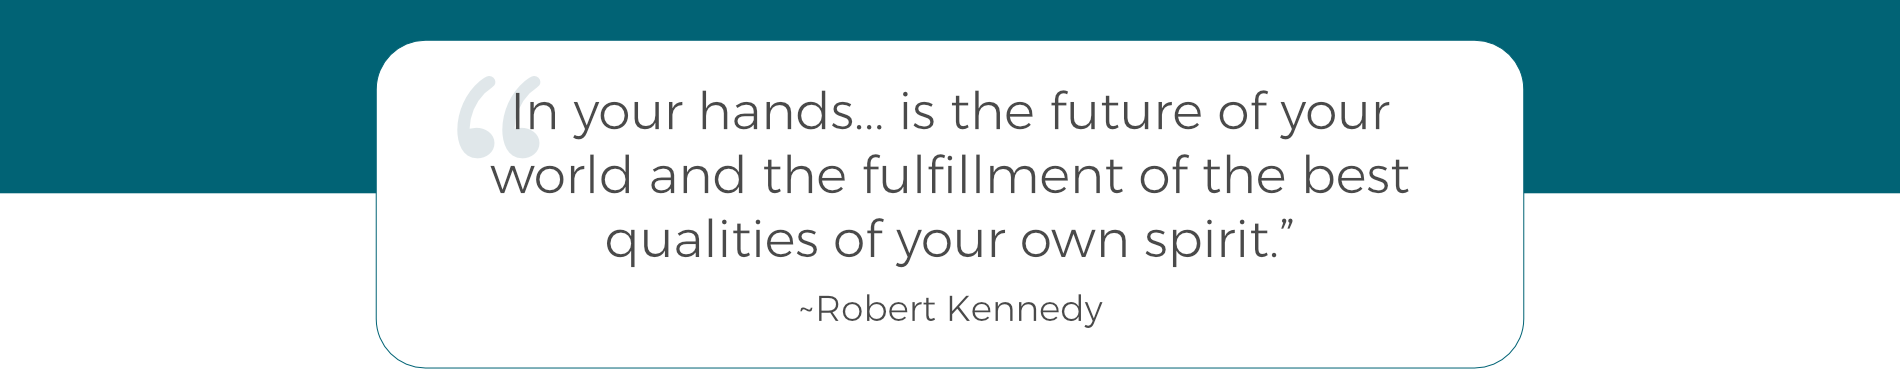 About David - Robert Kennedy Quote